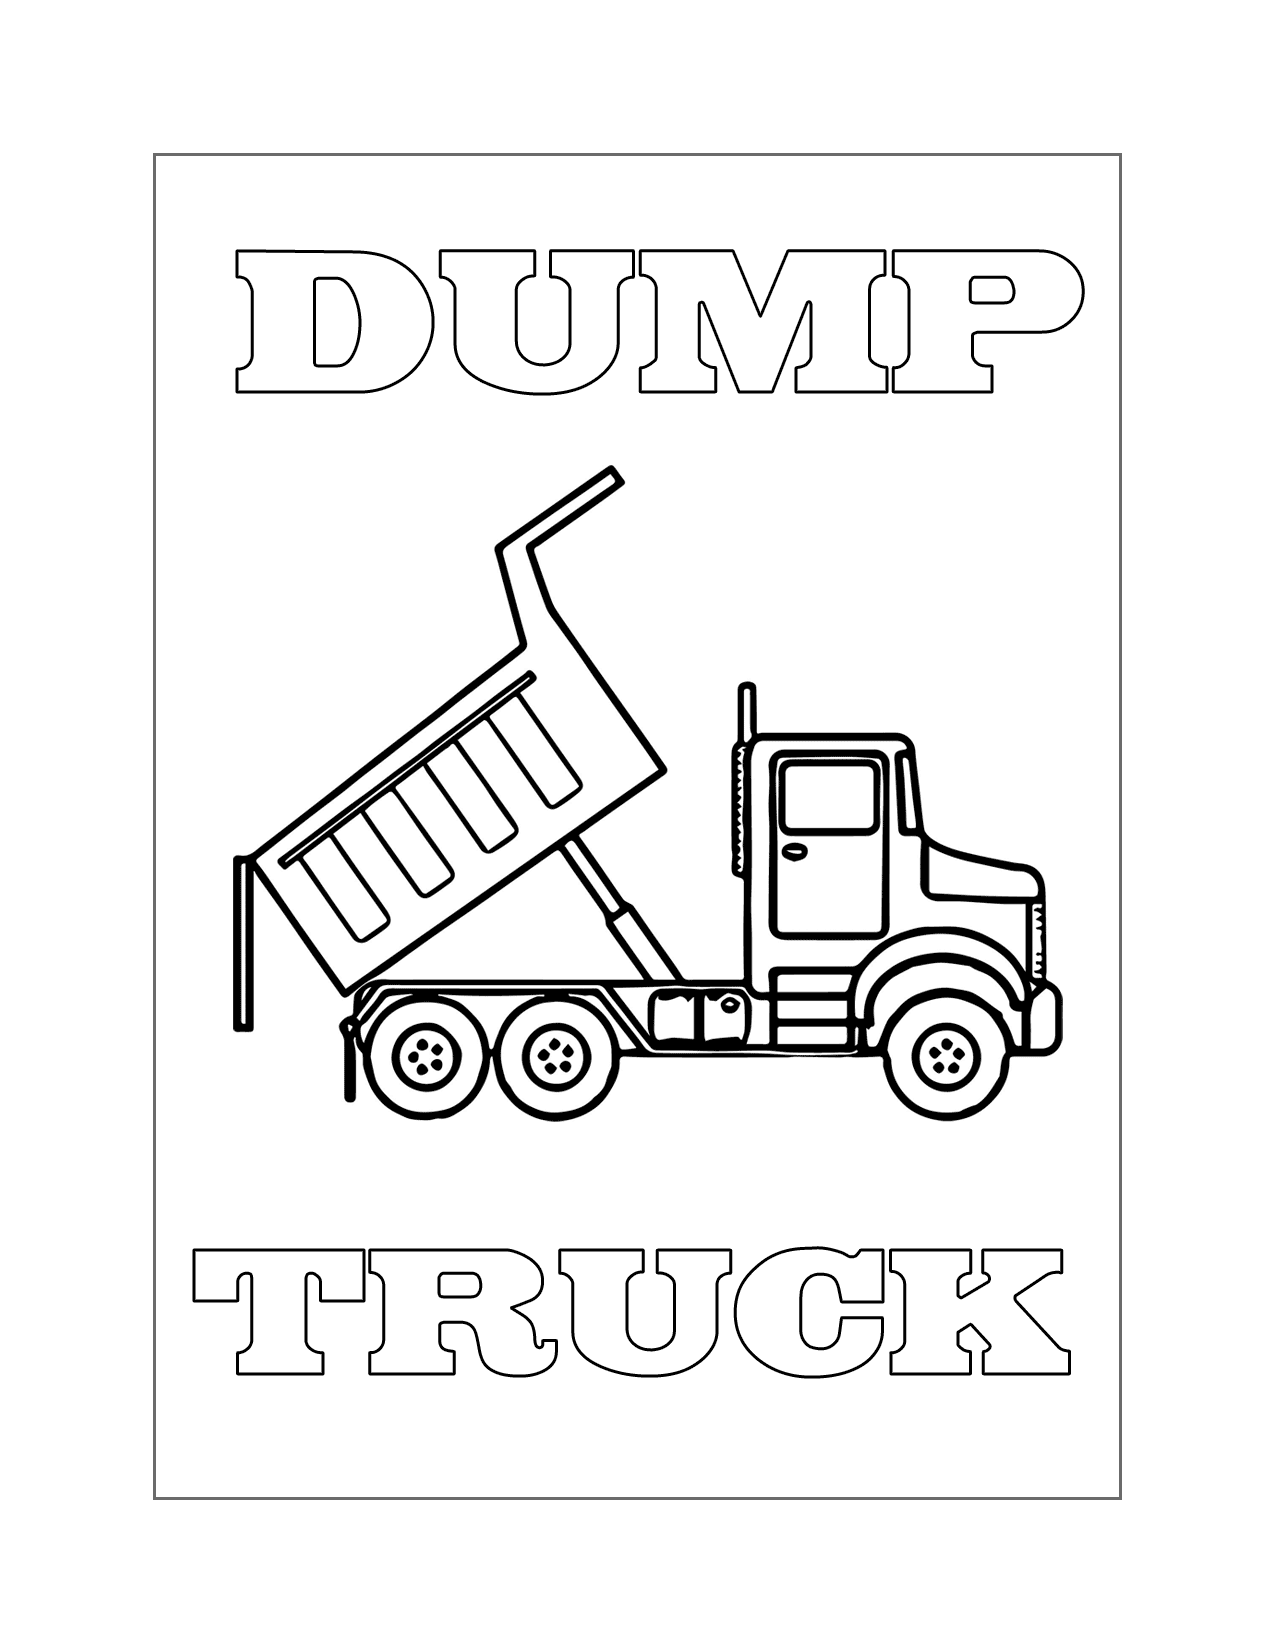 Easy Dump Truck Coloring Page